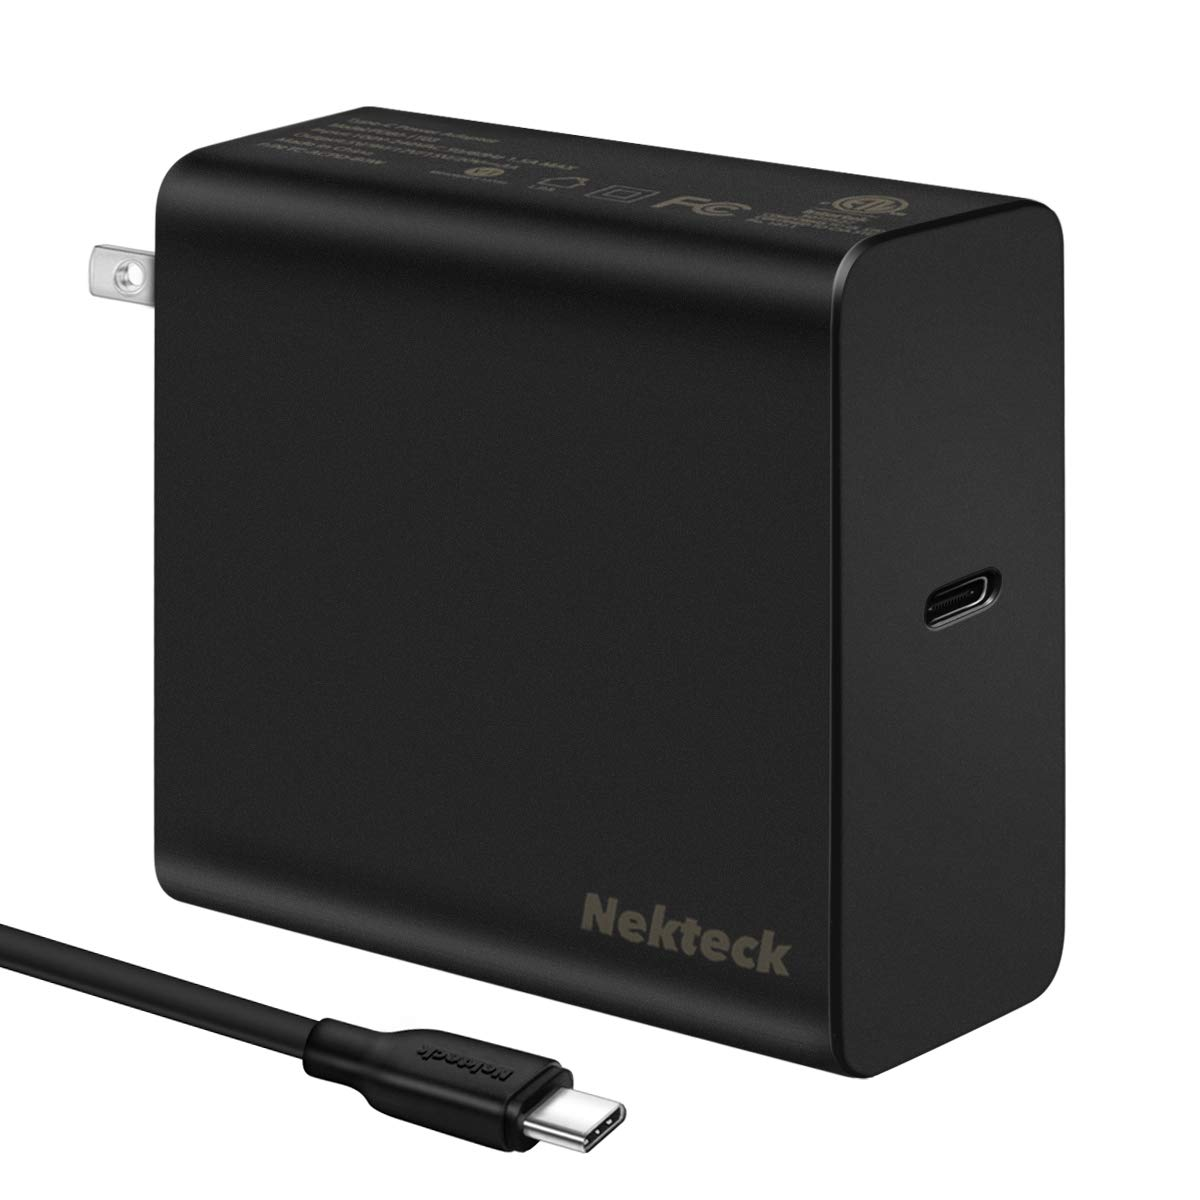 USB C Wall Charger, Nekteck 60W Type C Laptop Power Adapter with Power Delivery for MacBook Pro/Air 2018, HP Spectre, Dell Xps, Matebook, Ipad Pro, iPhone, Galaxy, Pixel, Nintendo Switch, and More by Nekteck